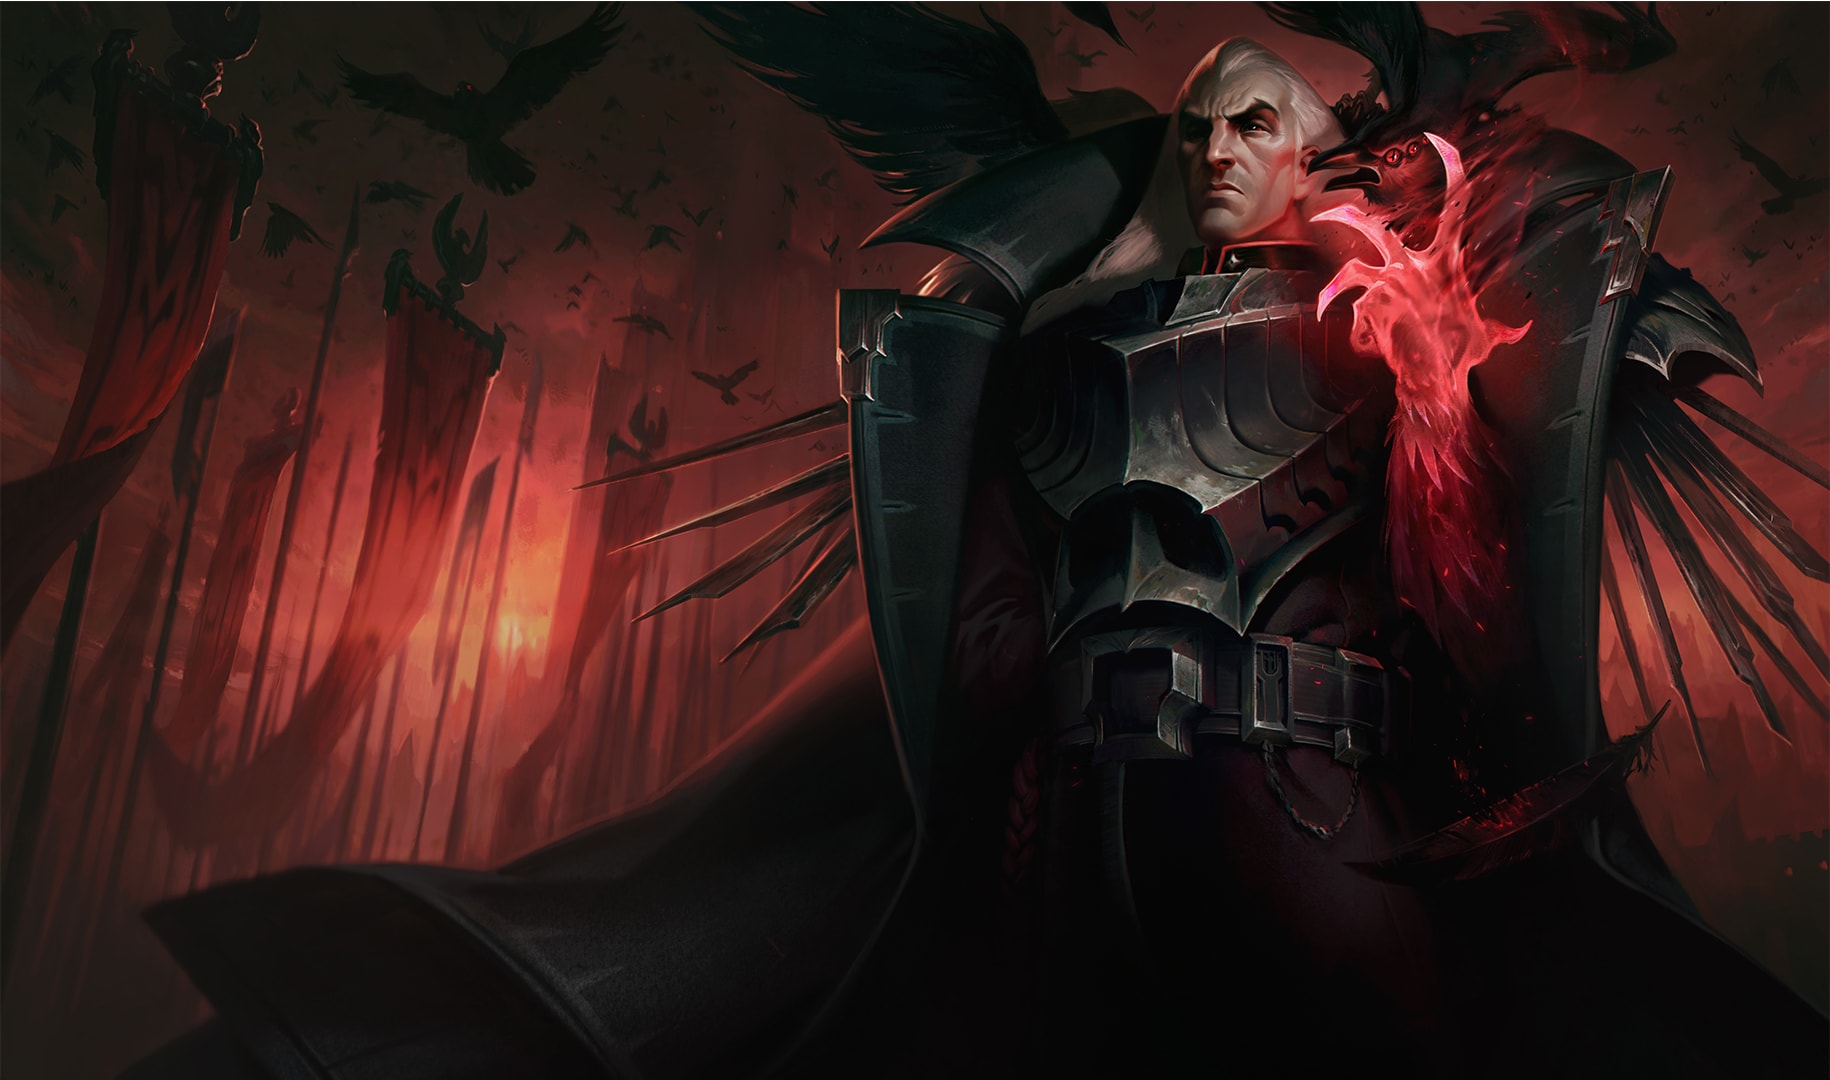 We put a lot of thought into the gesture for Swain's demon hand—we wanted him to feel relaxed but in control, with an air of brooding effortlessness.